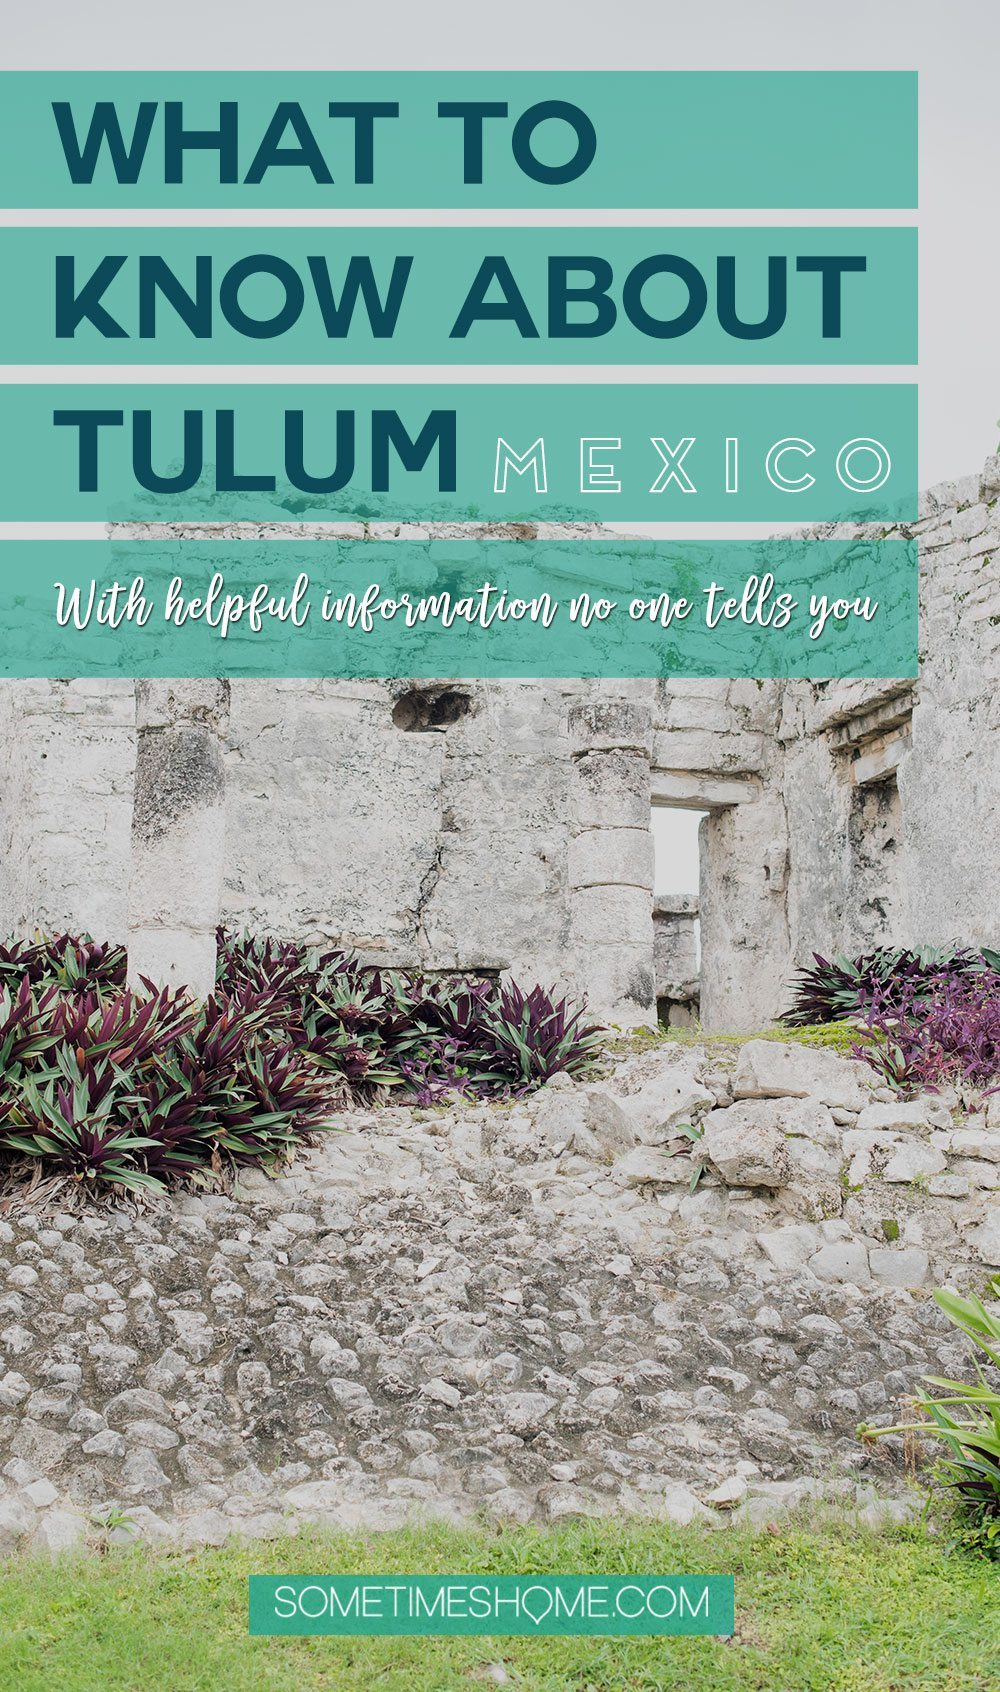 Tulum Mexico Travel Vacation Tips with helpful information no one tells you from times to go to the ruins to other activities and secrets of this romantic city. Click through to see detailed info! #TulumMexico #TulumTips